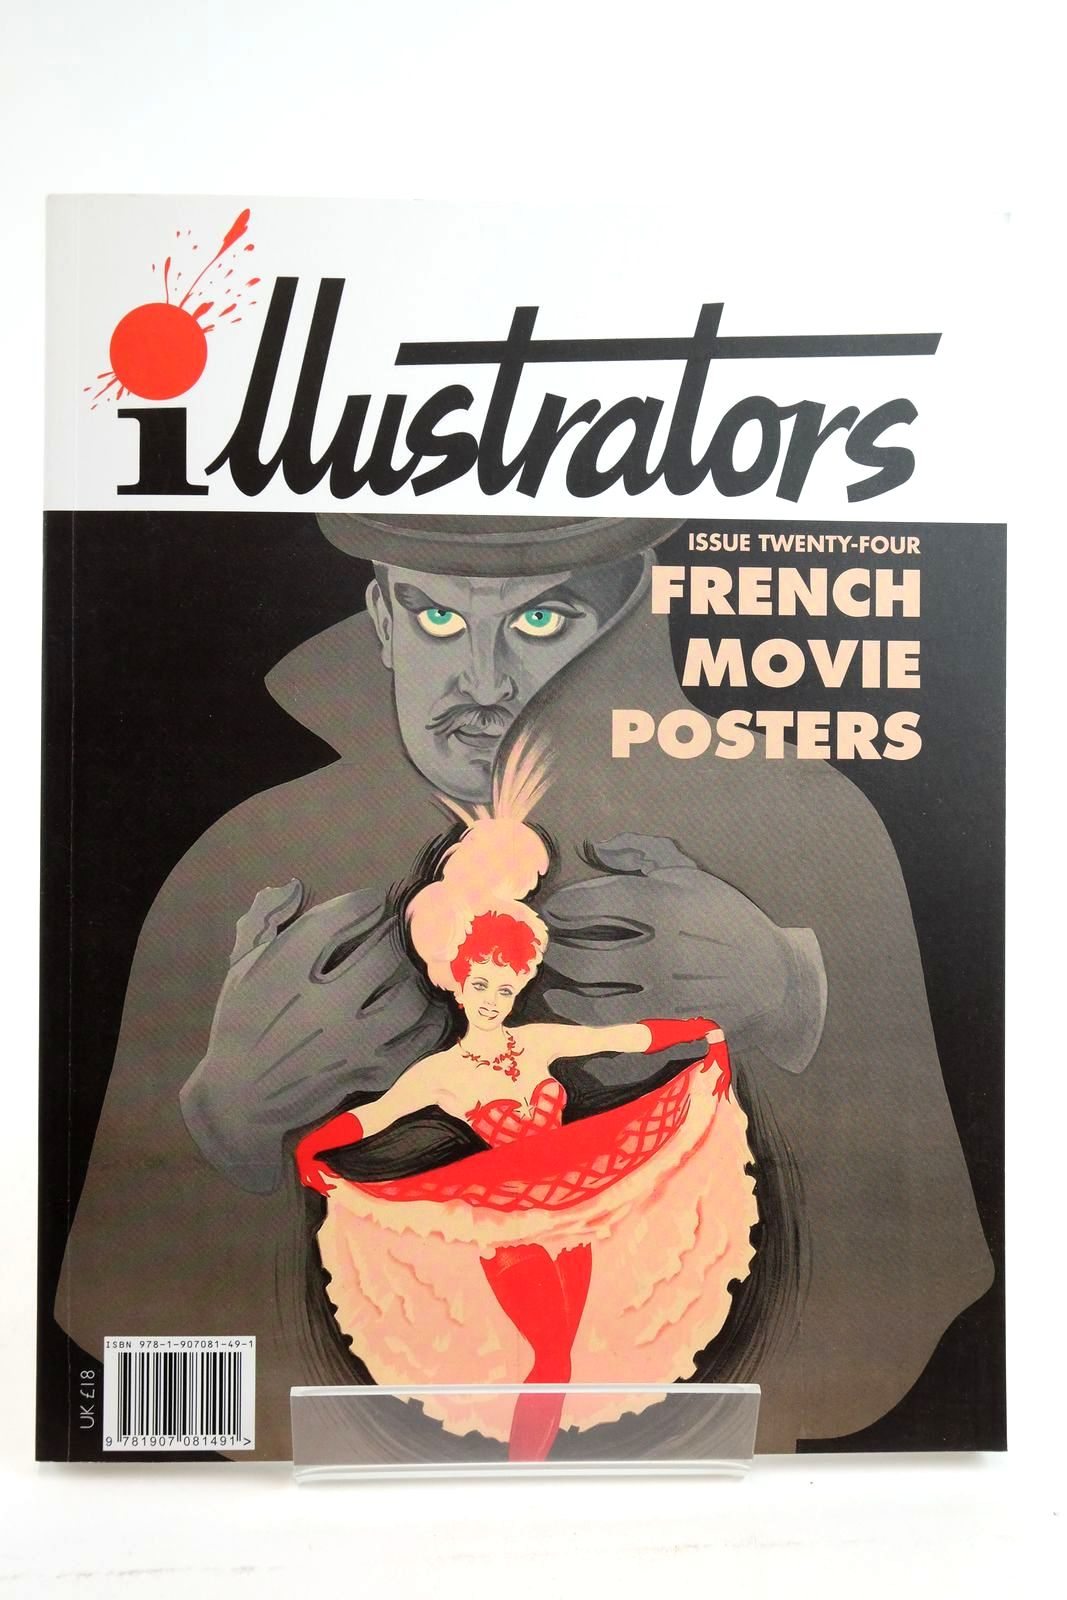 Photo of ILLUSTRATORS ISSUE TWENTY-FOUR FRENCH MOVIE POSTERS illustrated by Grinsson, Boris Hurel, Clement Mascii, Jean et al., published by Geoff West (STOCK CODE: 2135115)  for sale by Stella & Rose's Books